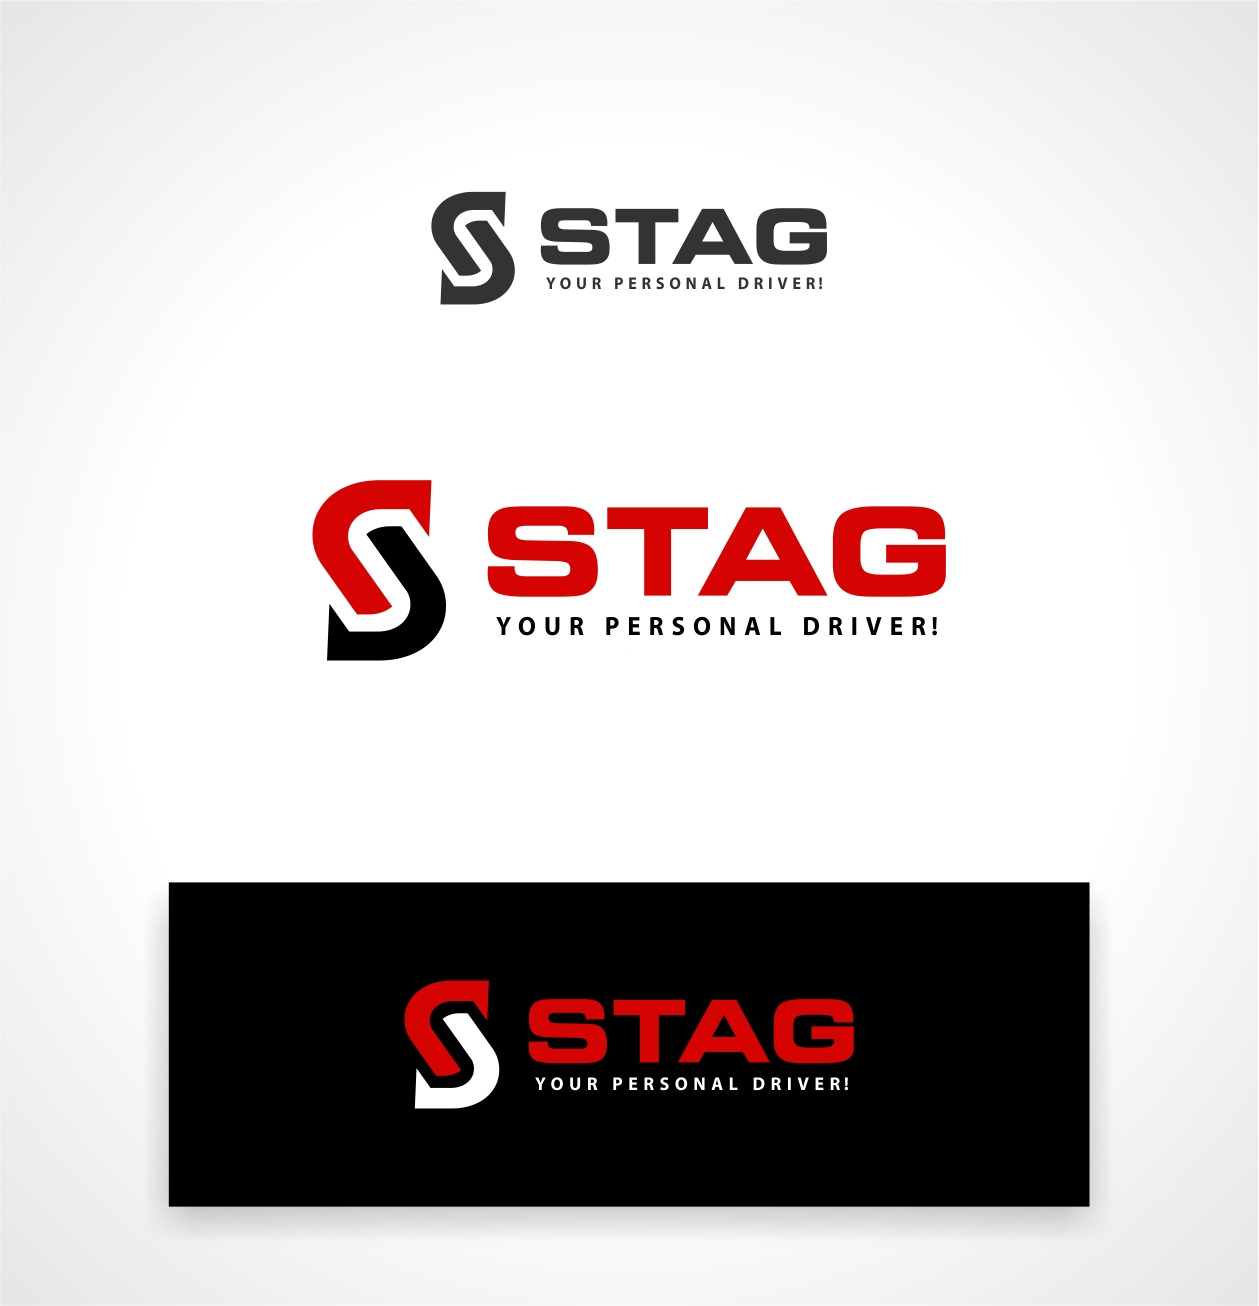 Logo Design by haidu - Entry No. 99 in the Logo Design Contest Unique Logo Design Wanted for Stag.